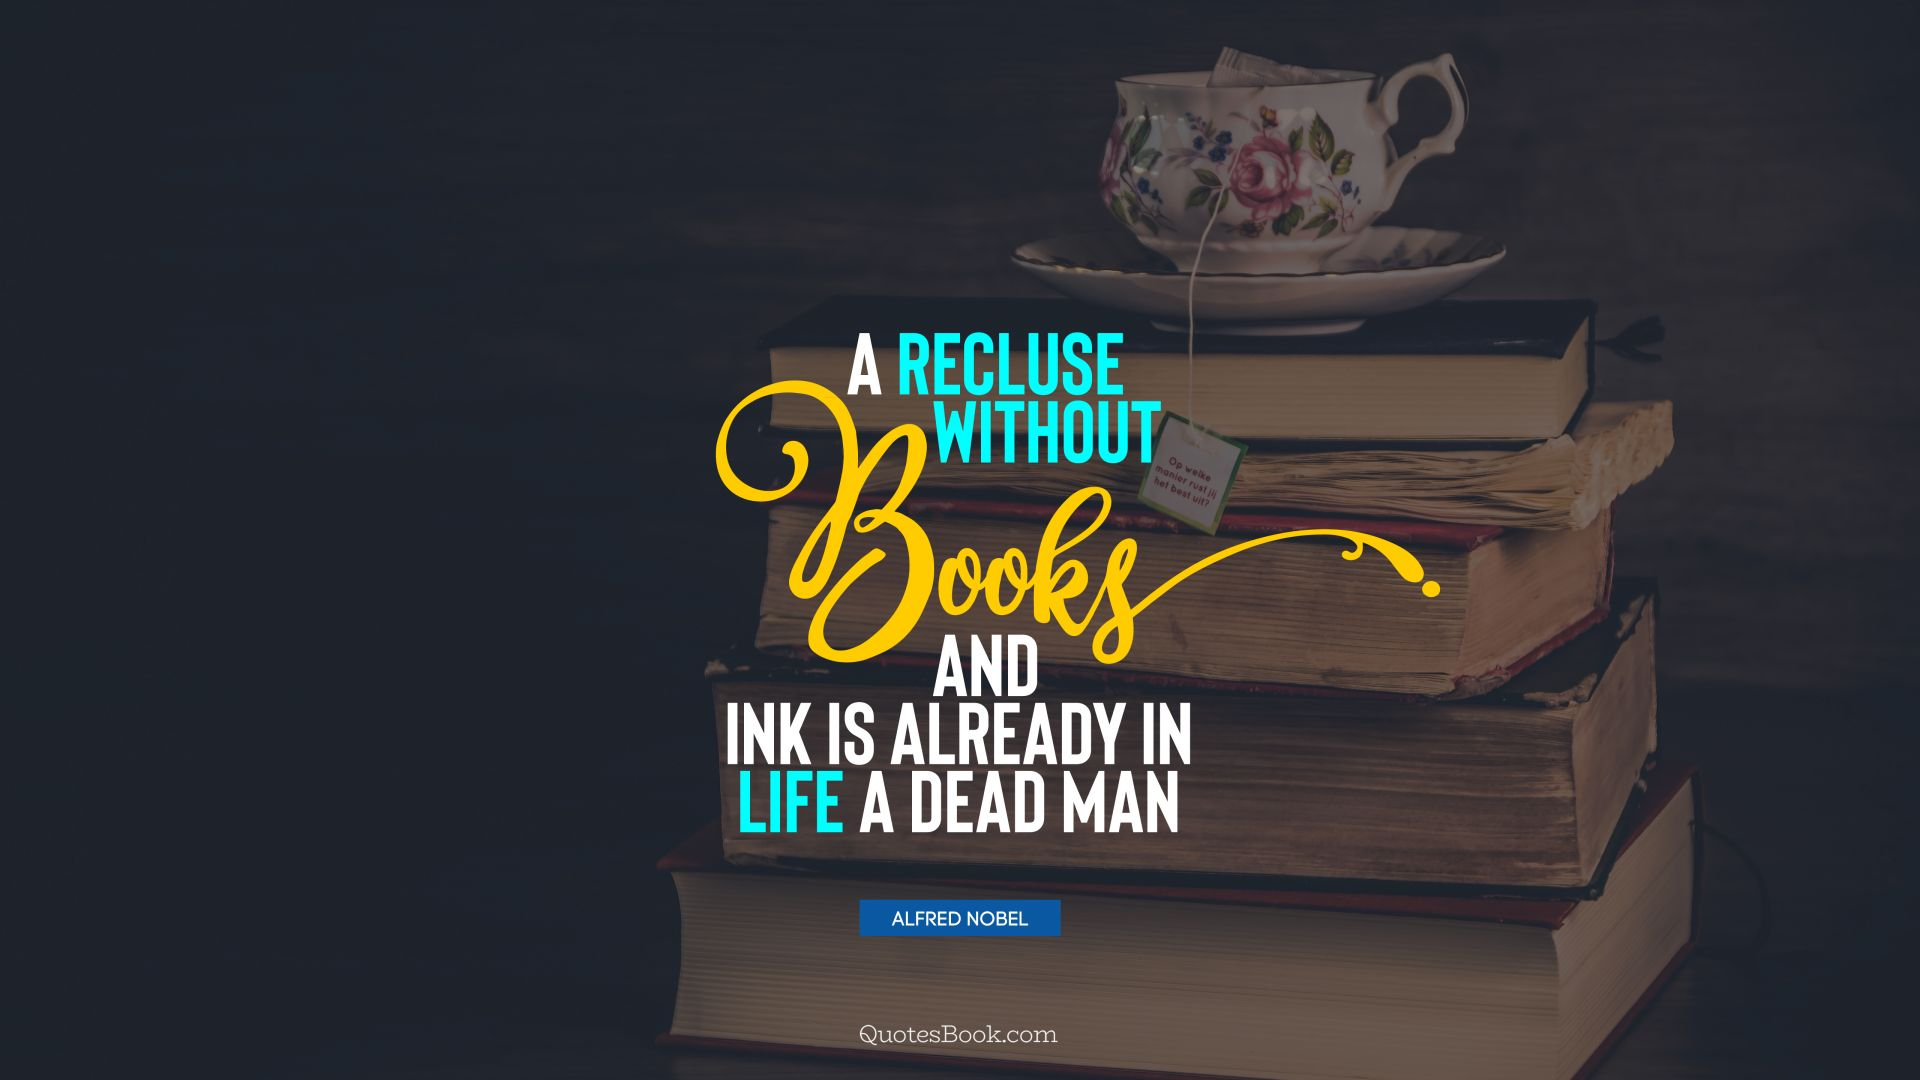 A recluse without books and ink is already in life a dead man. - Quote by Alfred Nobel